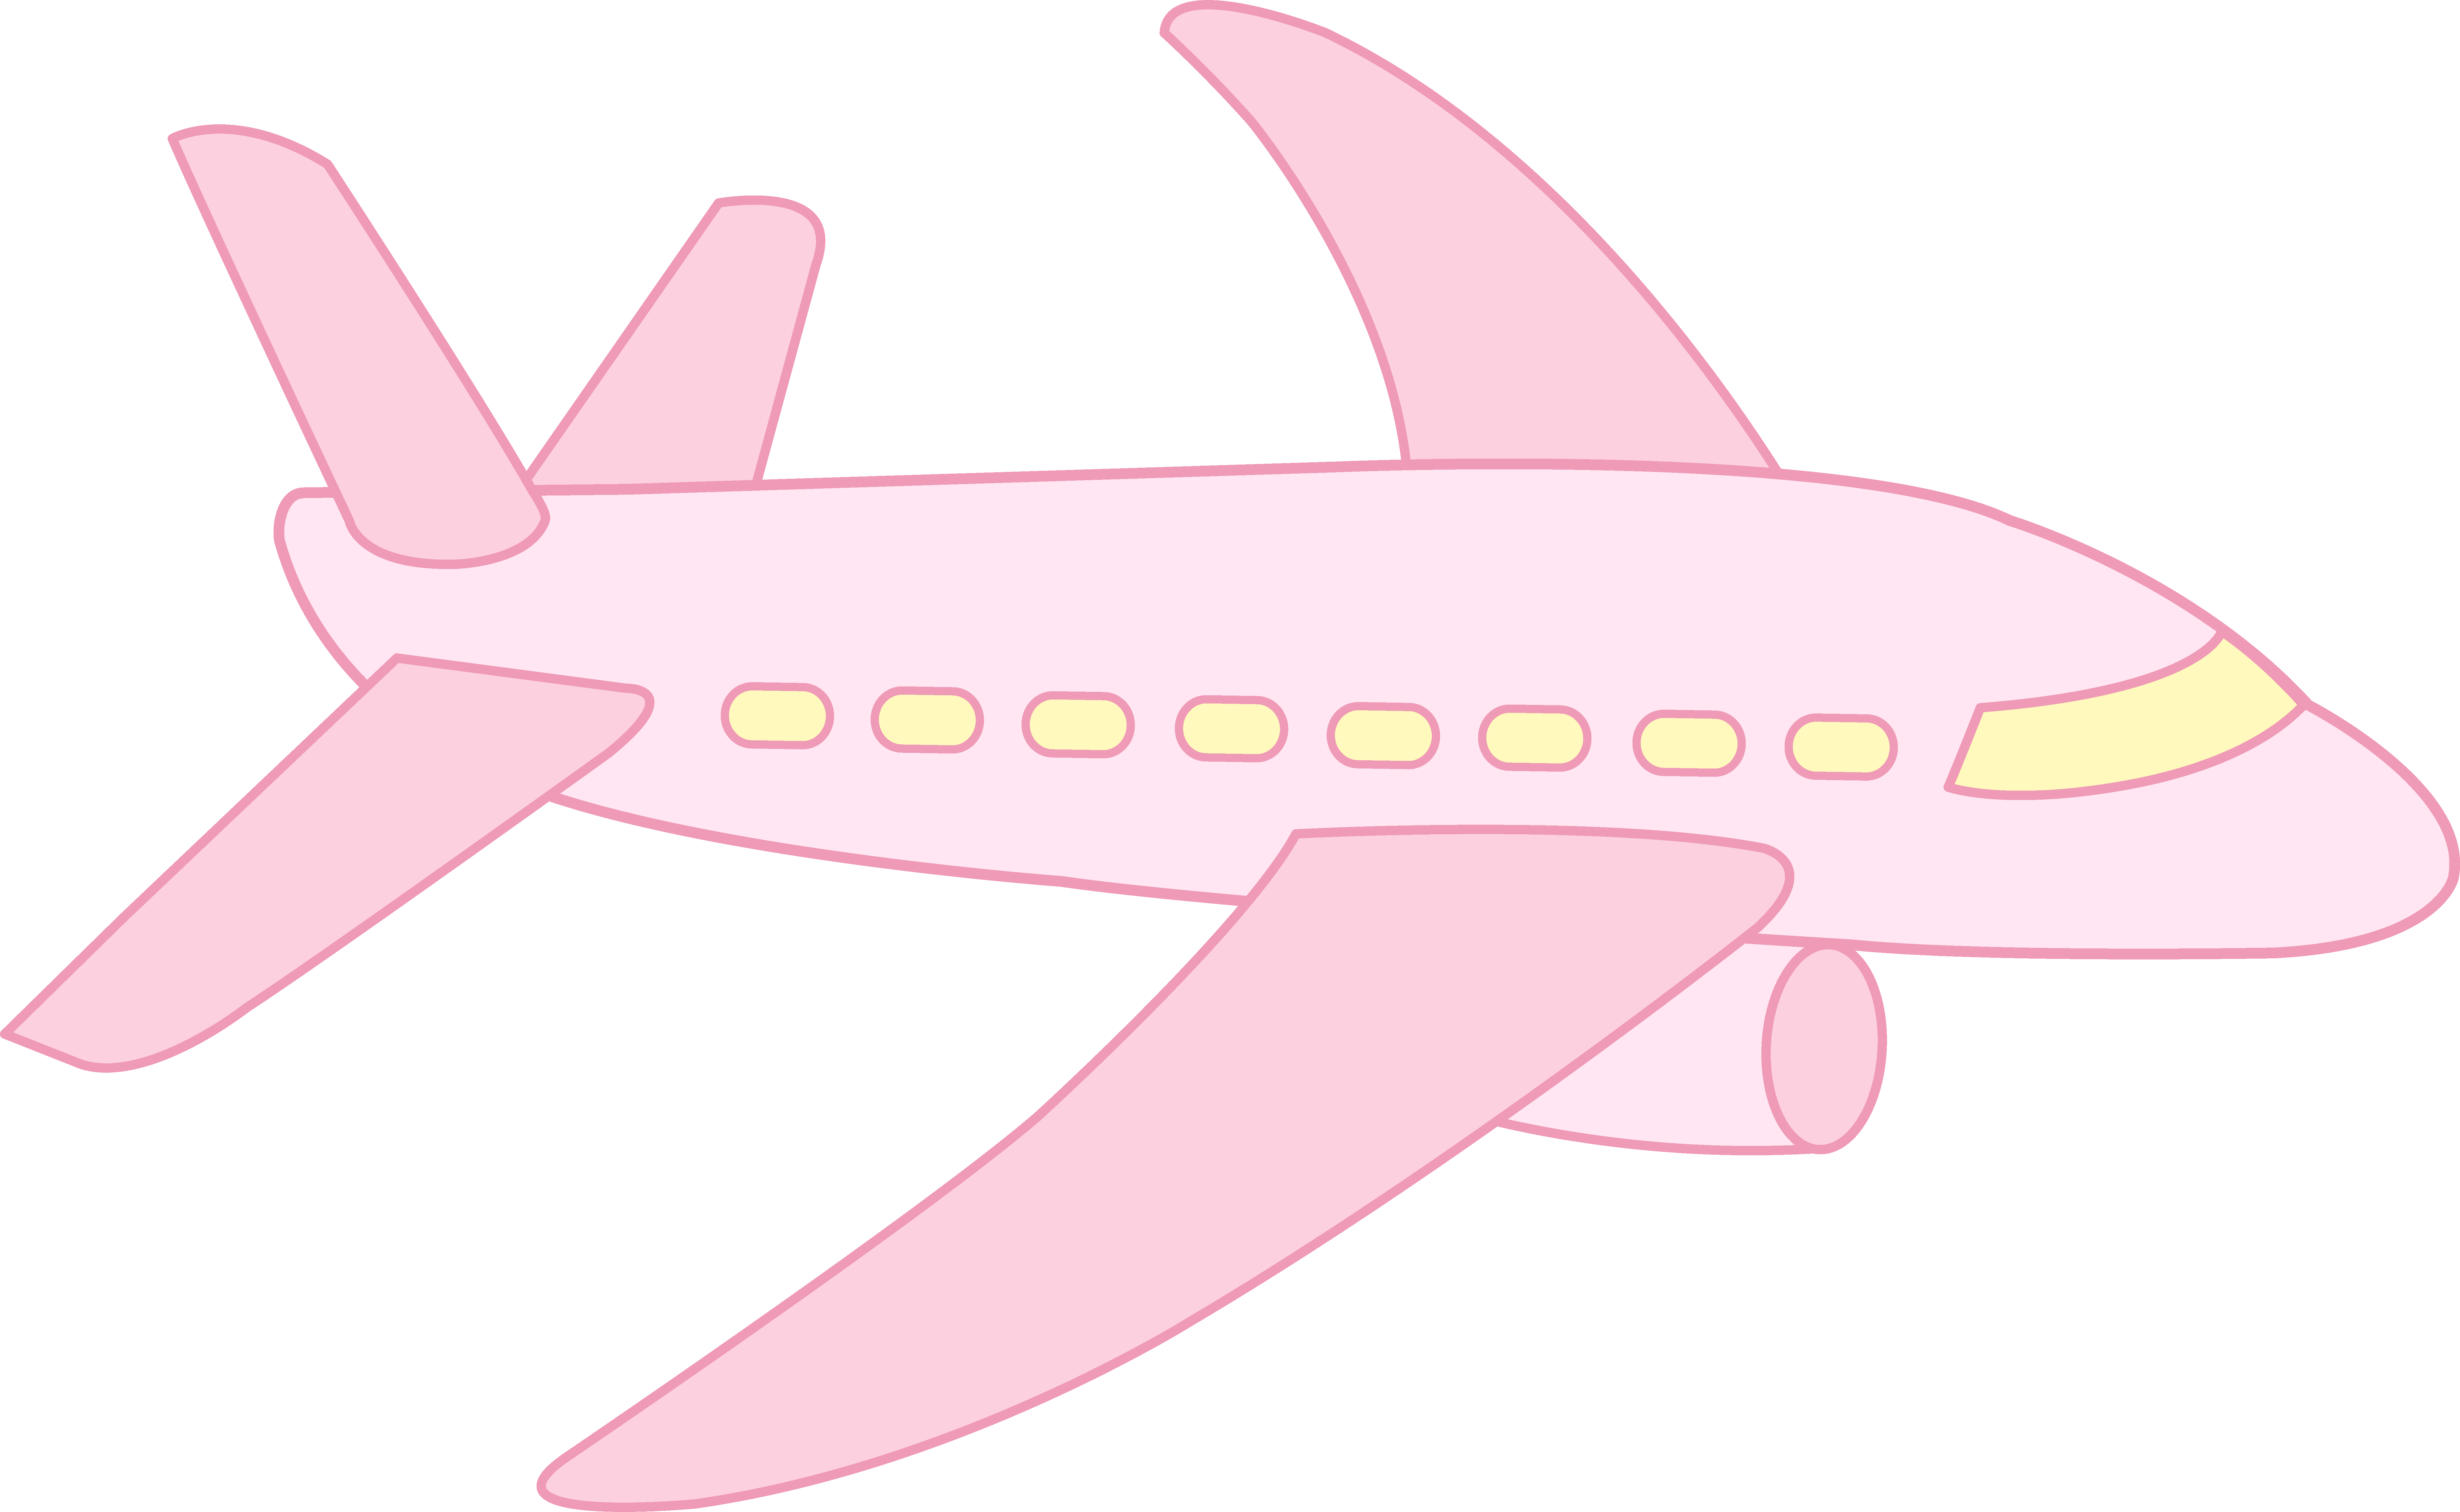 Airplane clipart girly clip art library stock Free Cute Plane Cliparts, Download Free Clip Art, Free Clip Art on ... clip art library stock